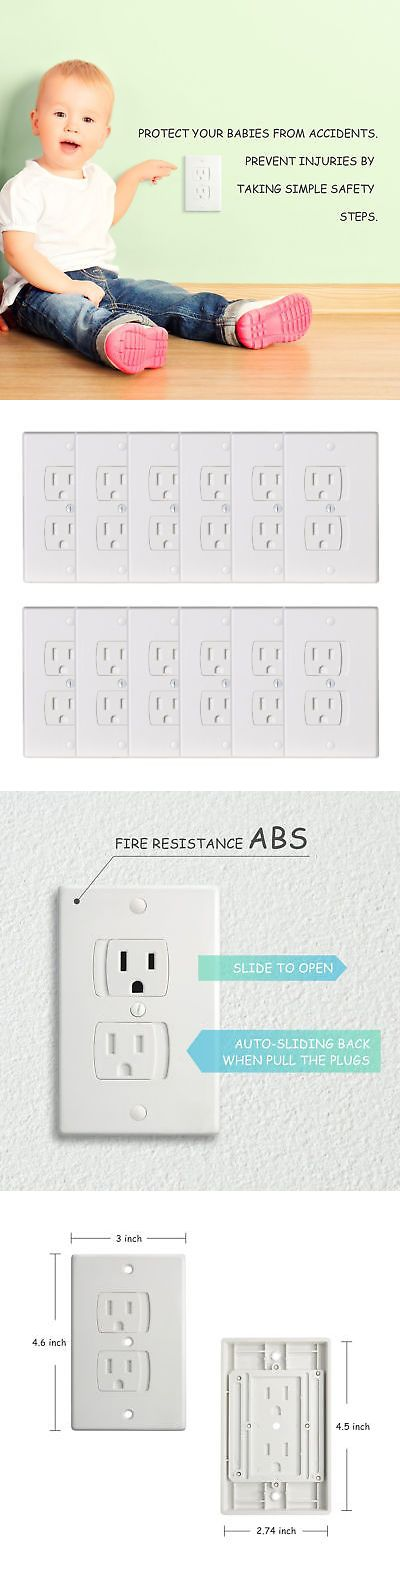 Baby Proofing 184339: 12X Universal Electrical Outlet Covers Baby Safety Self-Closing Wall Socket Plug -> BUY IT NOW ONLY: $35.79 on eBay!